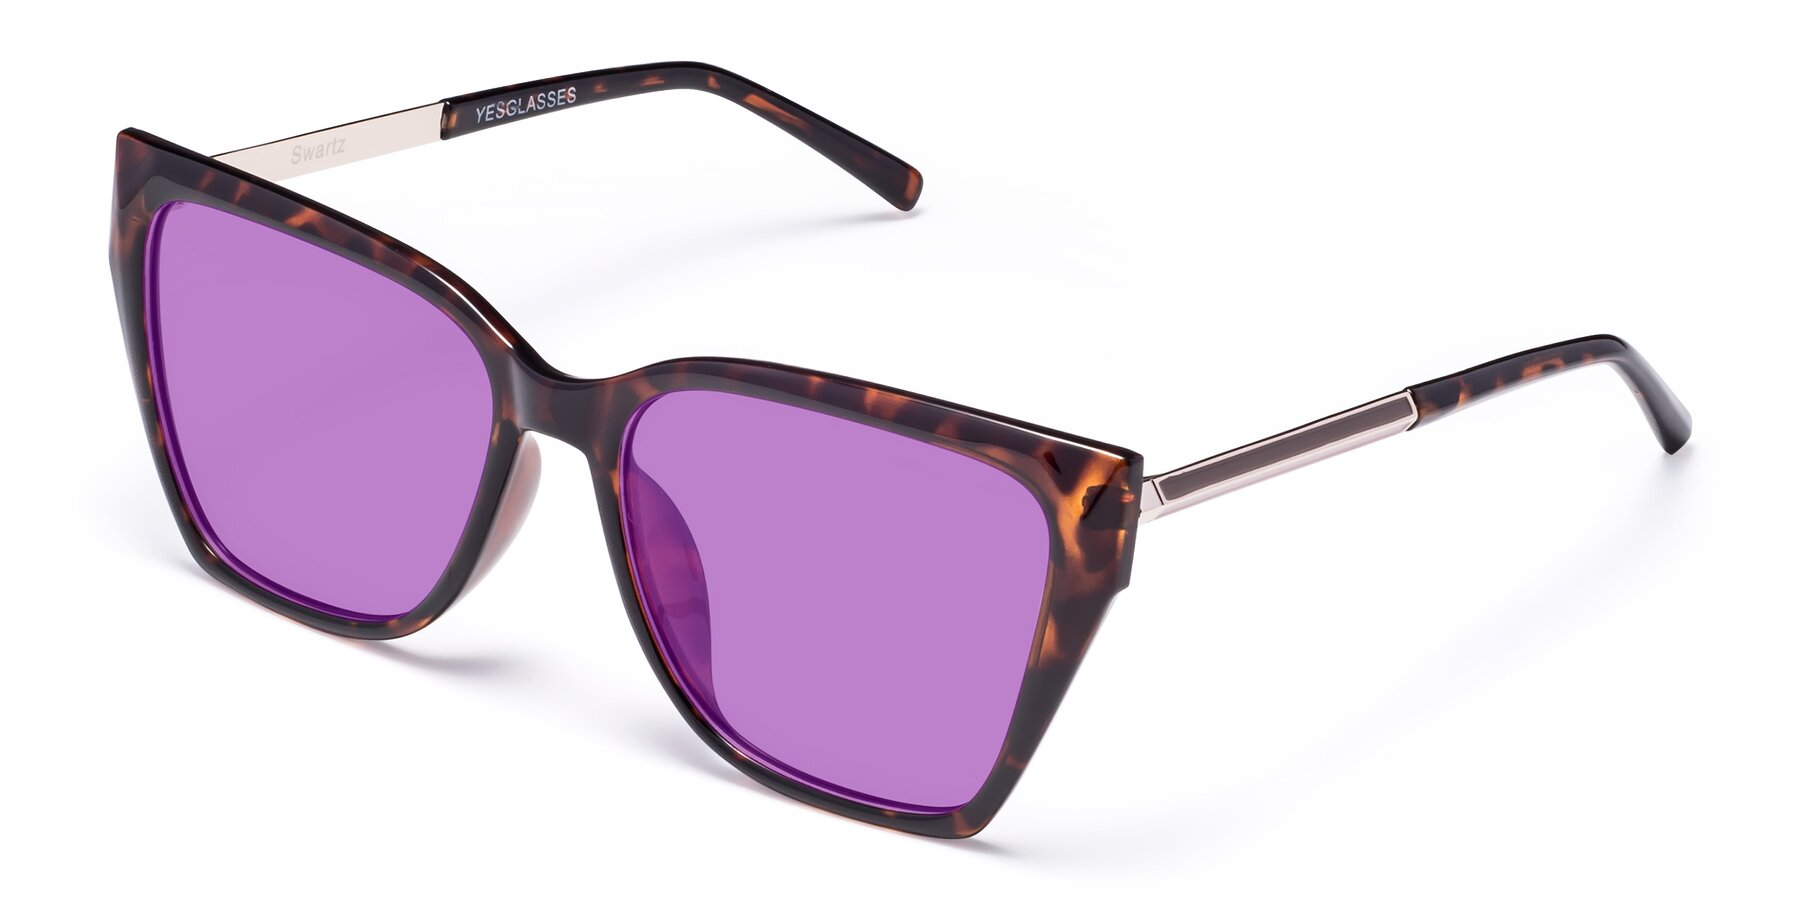 Angle of Swartz in Tortoise with Medium Purple Tinted Lenses